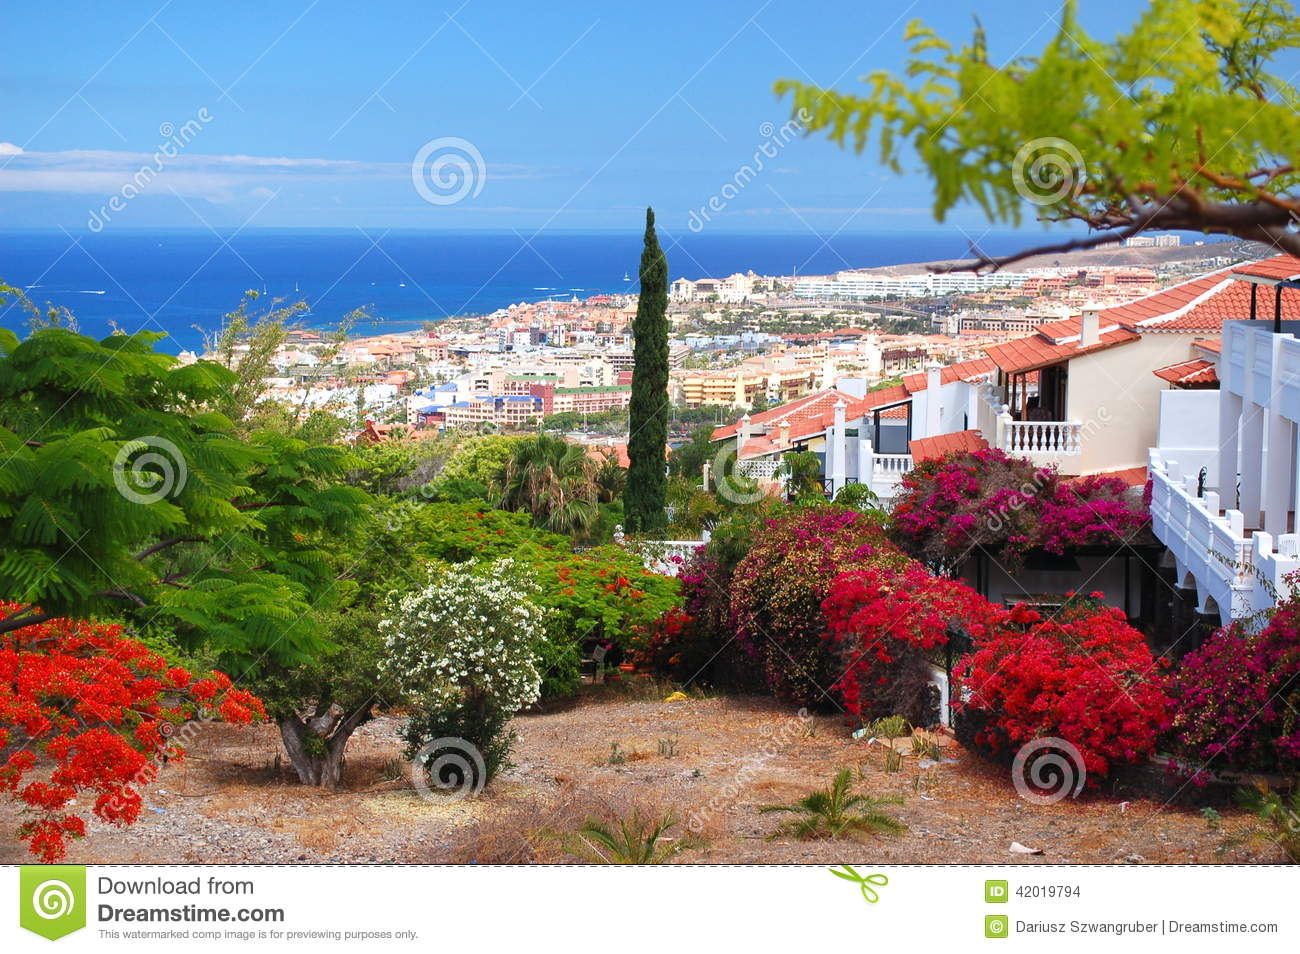 Beautiful Soggiorno Tenerife Images - Design Trends 2017 - shopmakers.us